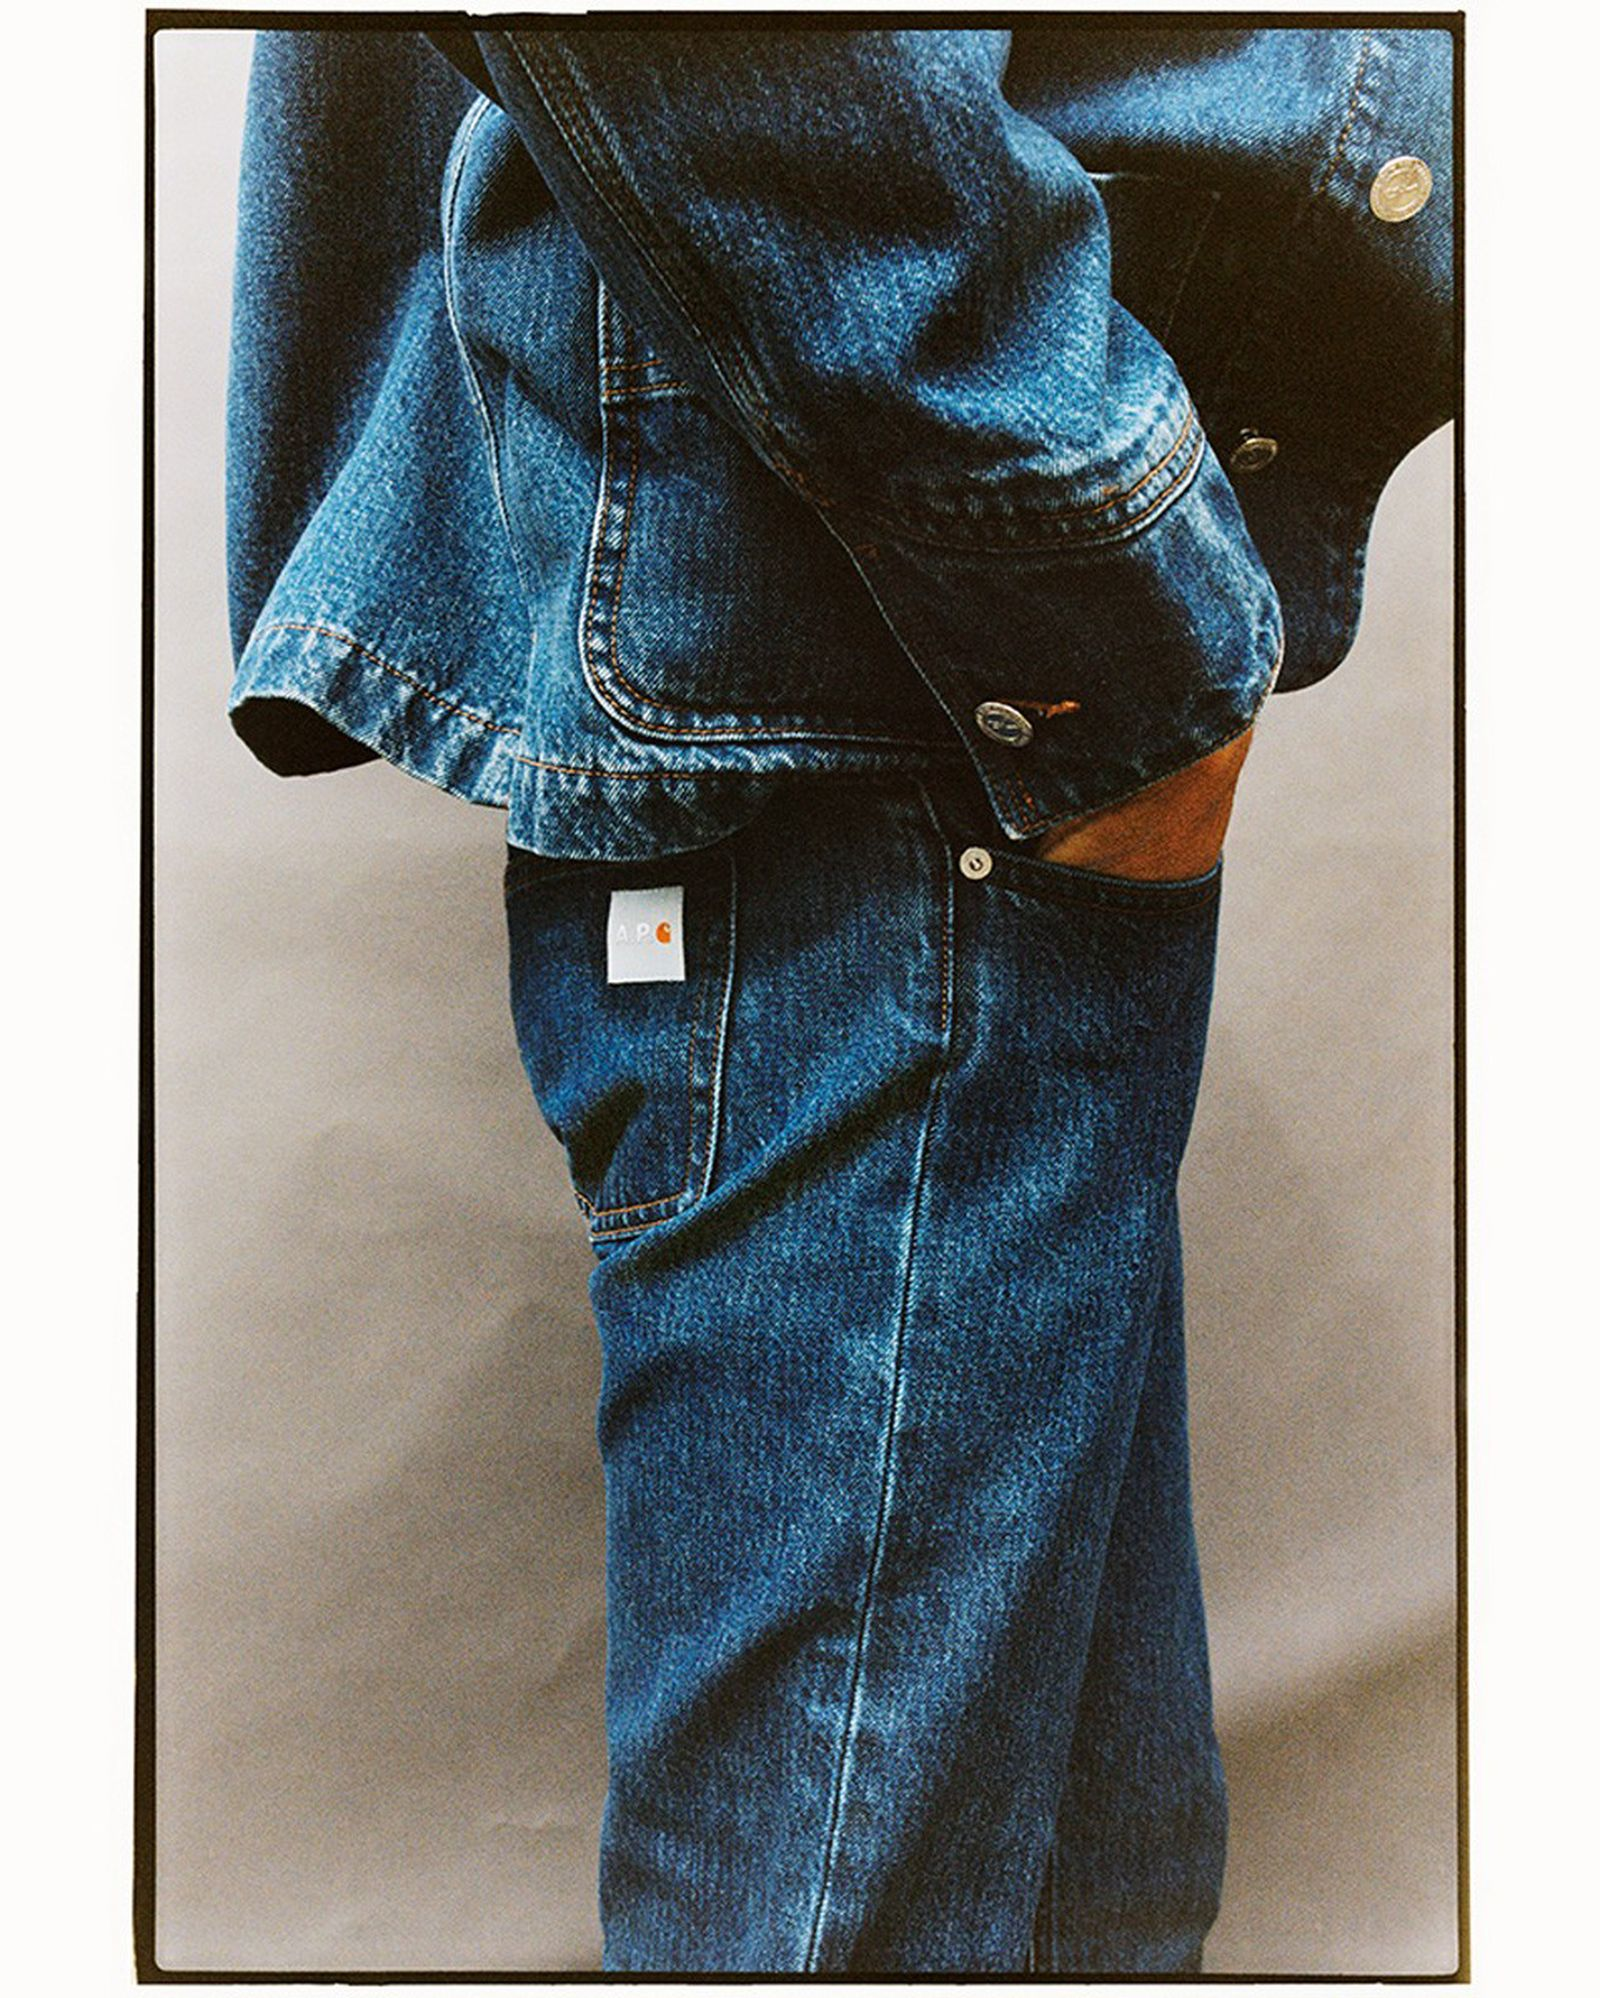 A.P.C. x Carhartt WIP Jeans and Blue Denim Jacket